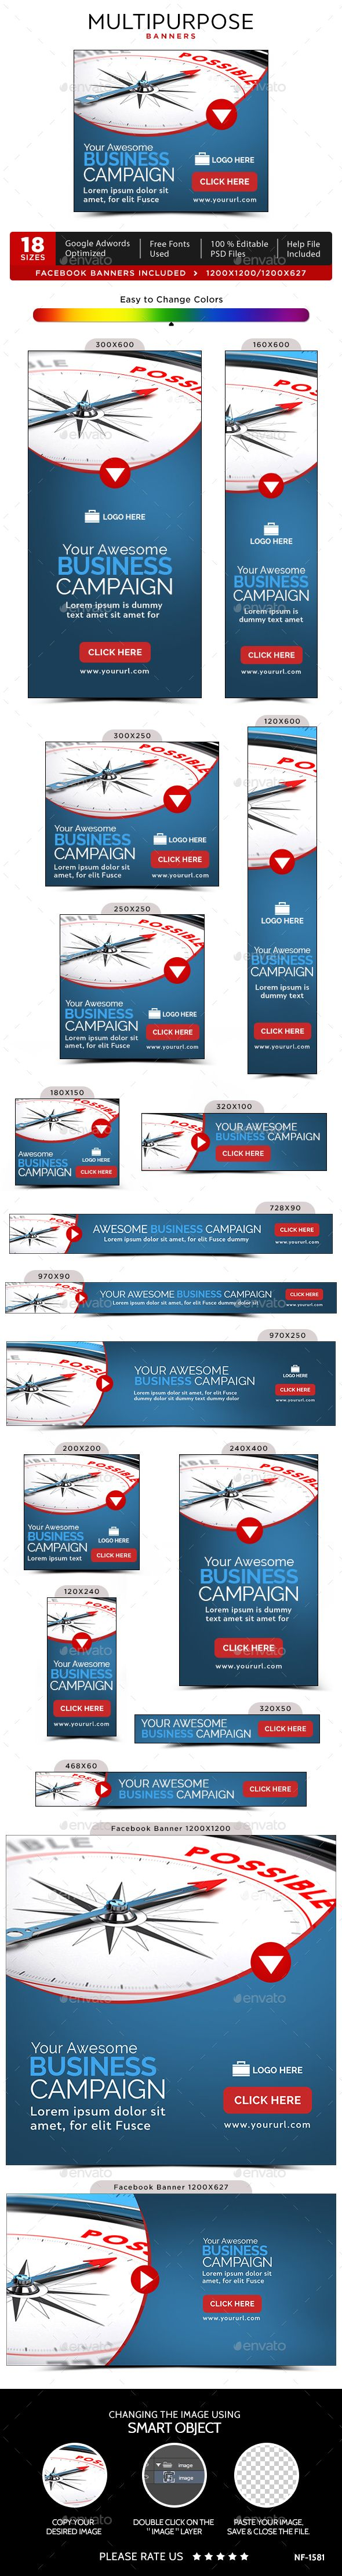 Multipurpose Web Banners Template PSD